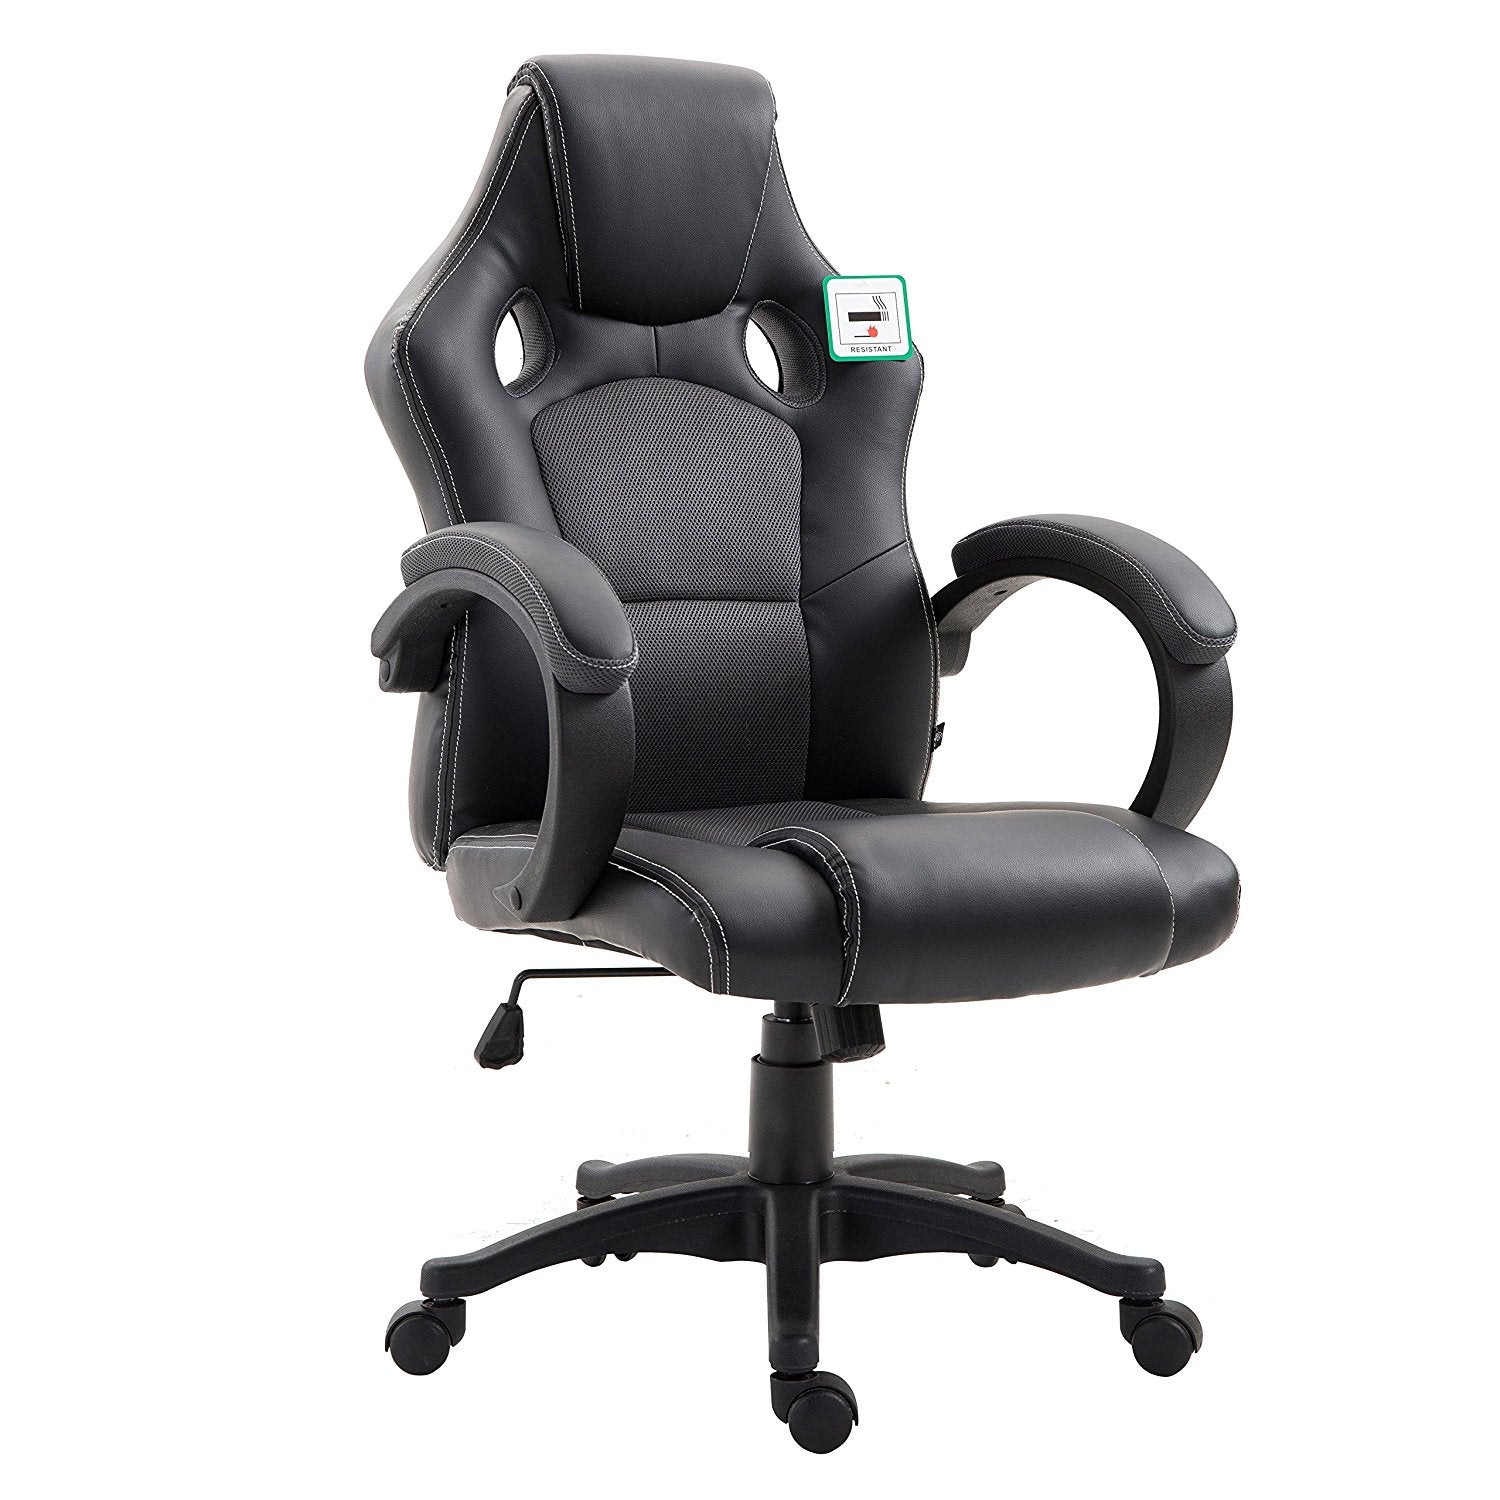 ctf sport racing gaming pu leather fabric swivel office chair grey